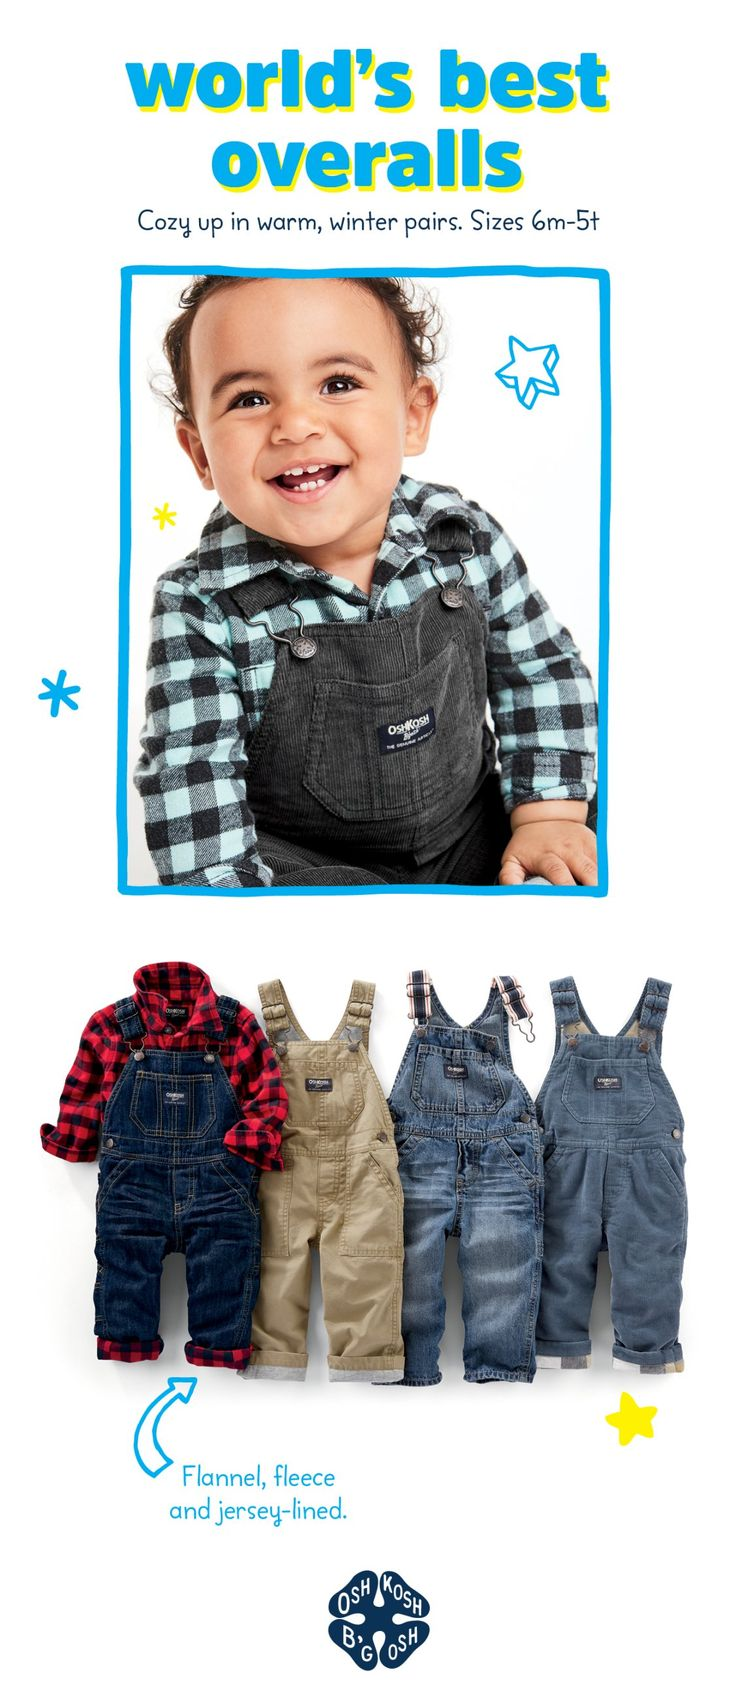 Shop the whole lineup of boys overalls